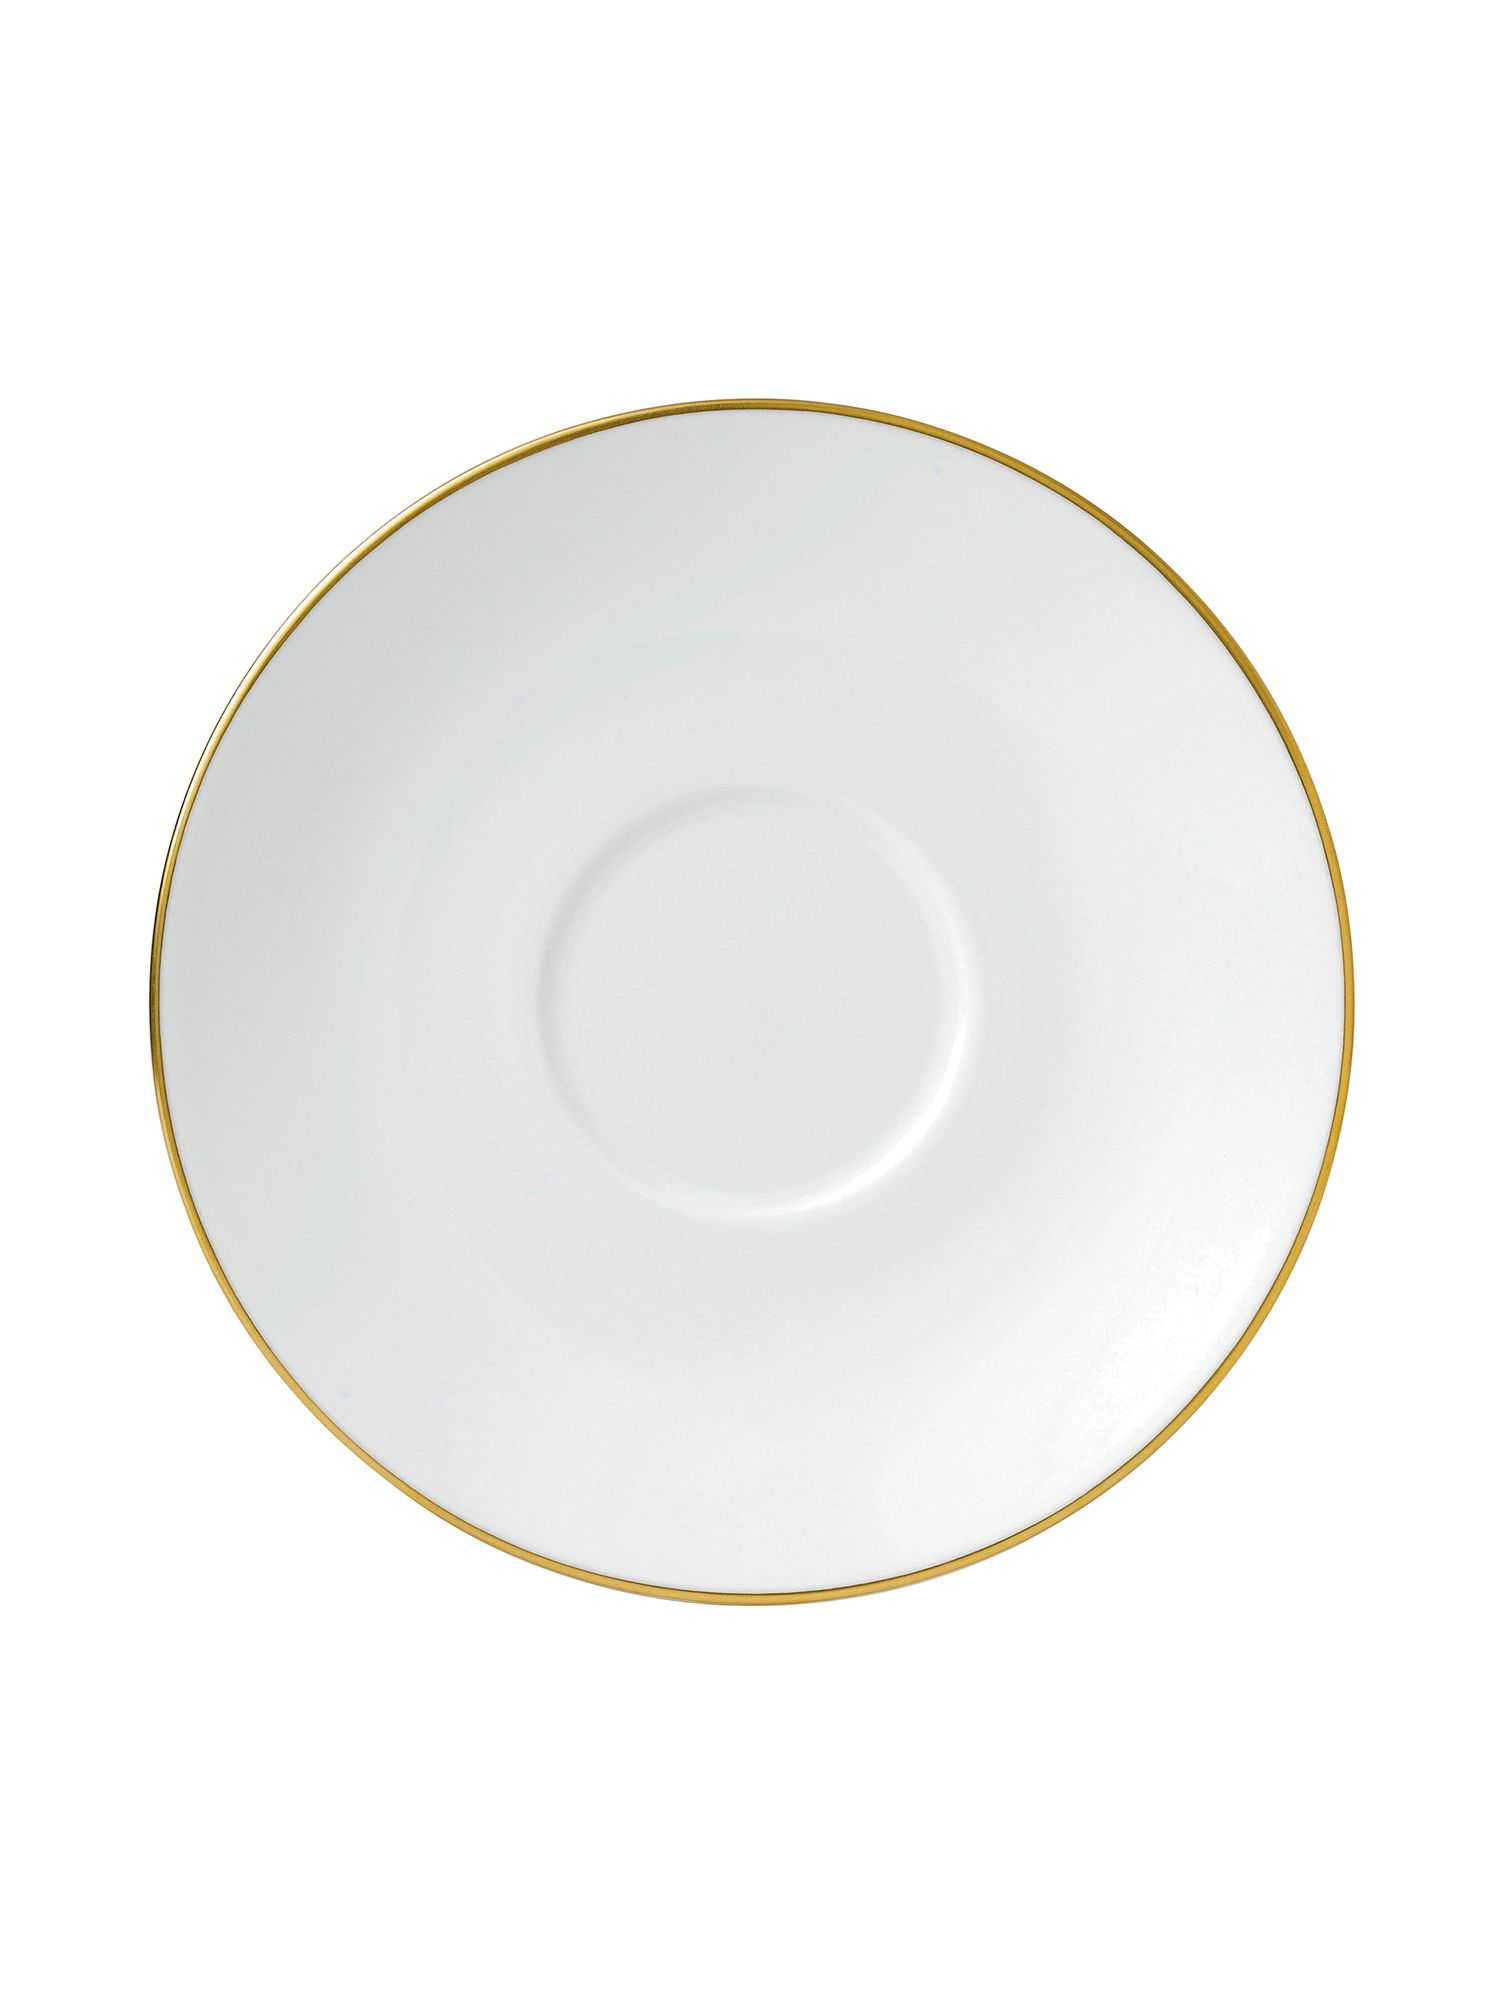 Jasper conran bone china gold tipped tea saucer